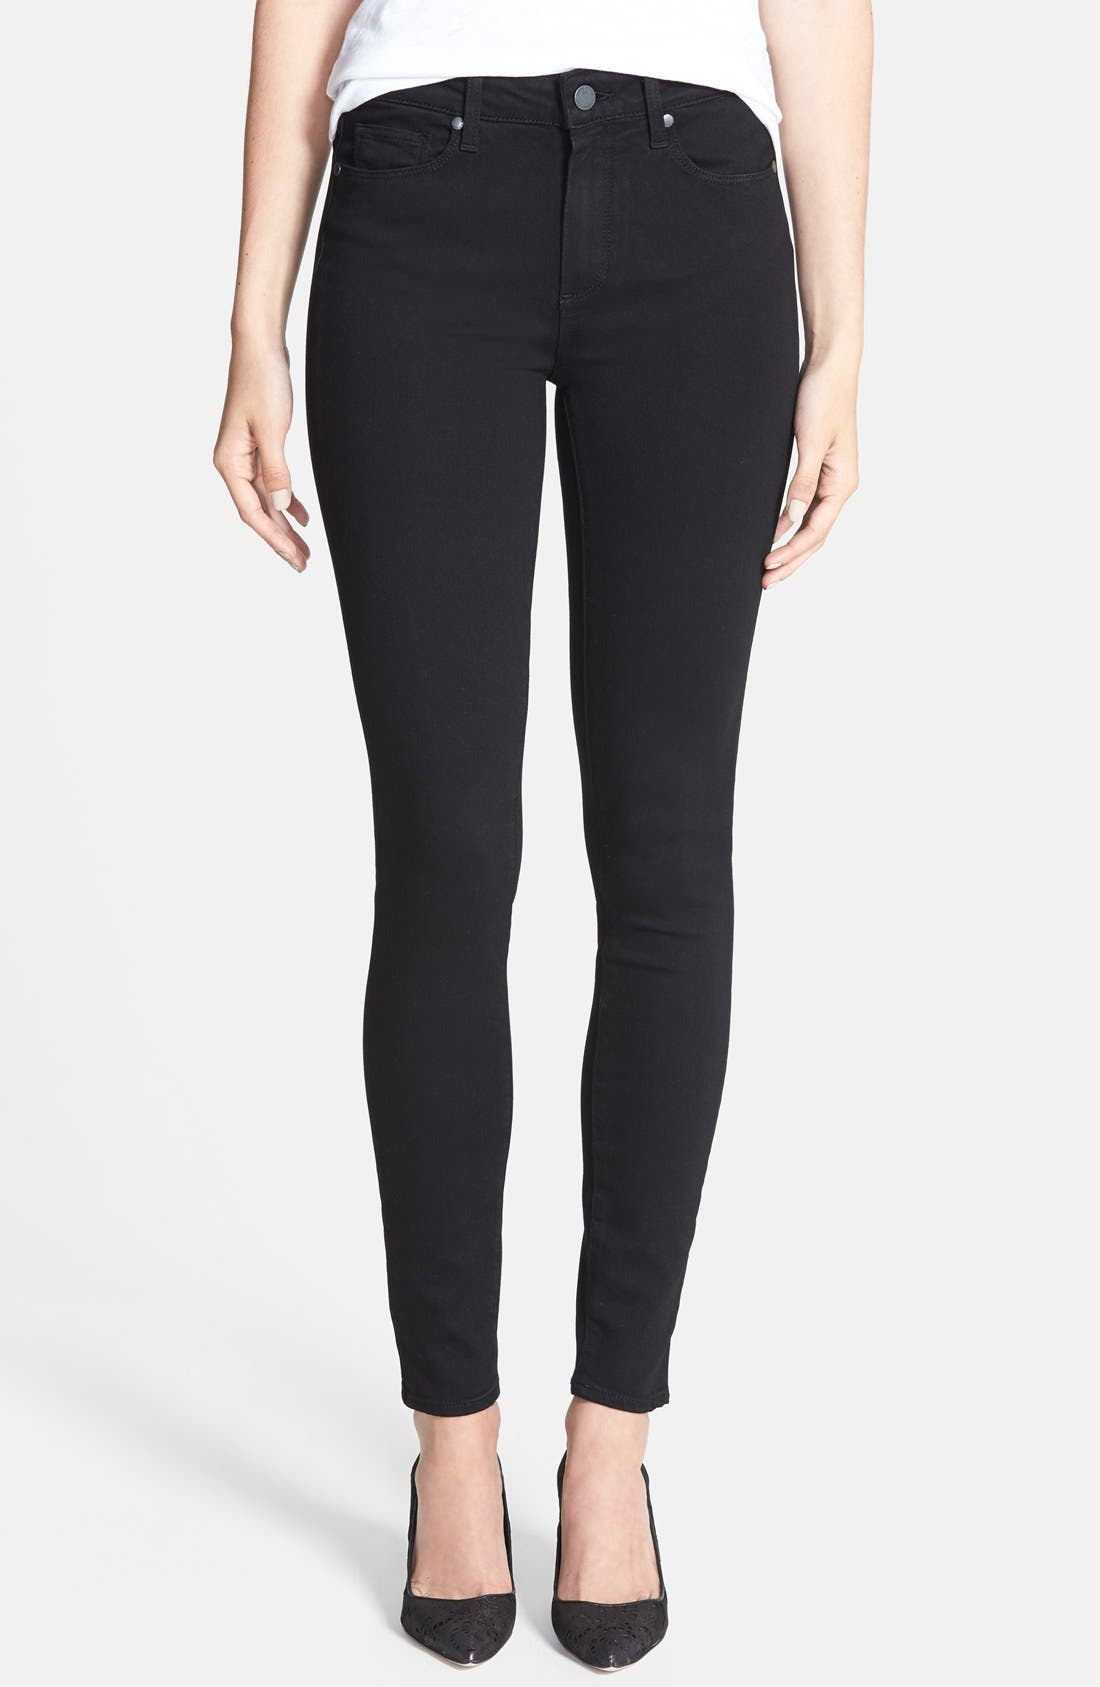 PAIGE Transcend - Hoxton High Waist Ultra Skinny Stretch Jeans ...